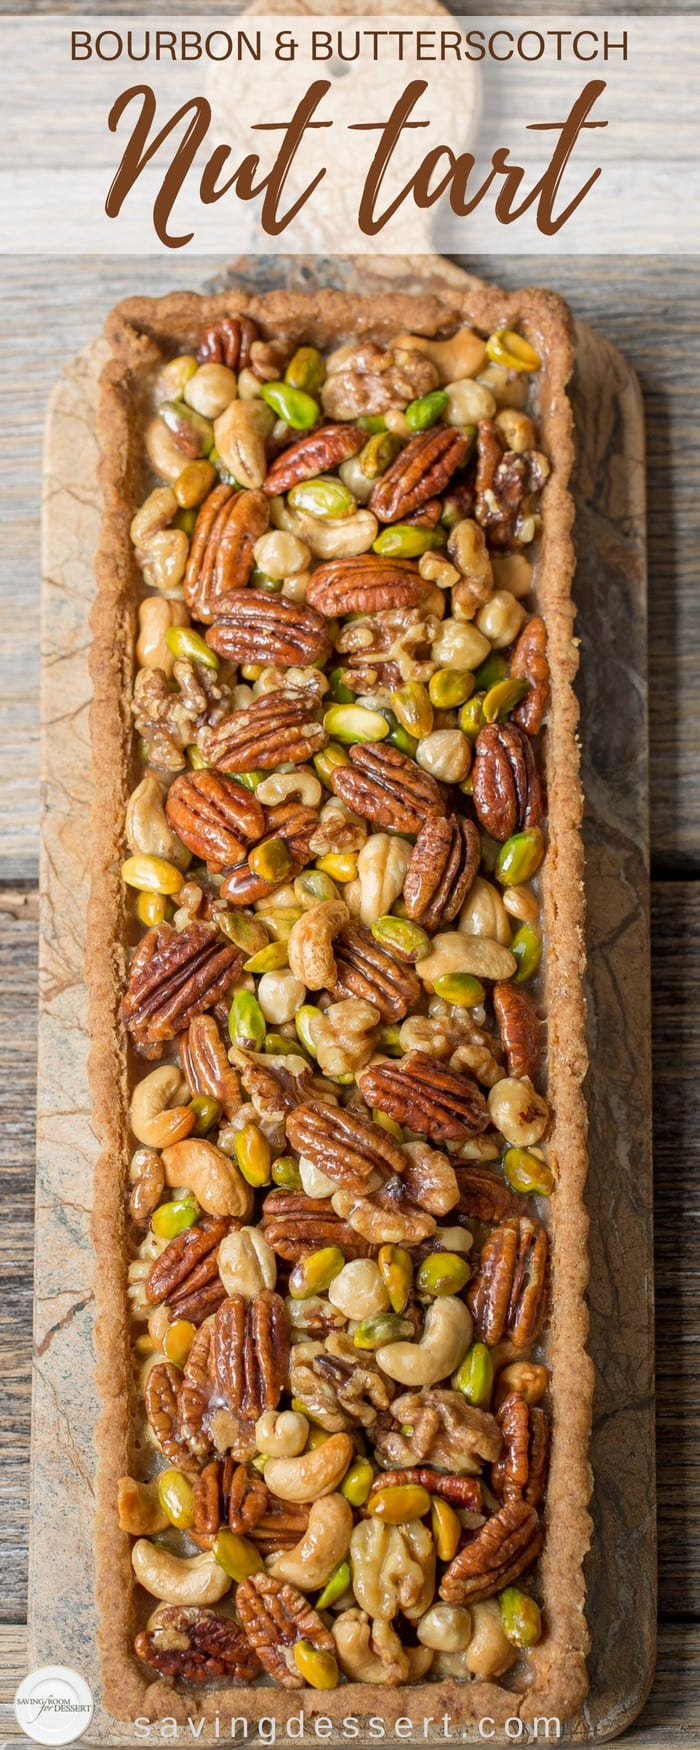 Bourbon & Butterscotch Nut Tart -Assorted nuts are coated in a smooth, creamy butterscotch sauce with just a hint of bourbon then baked in a pecan shortbread crust. #savingroomfordessert #tart #bourbontart #butterscotch #nuttart #baking #nutdessert #dessert